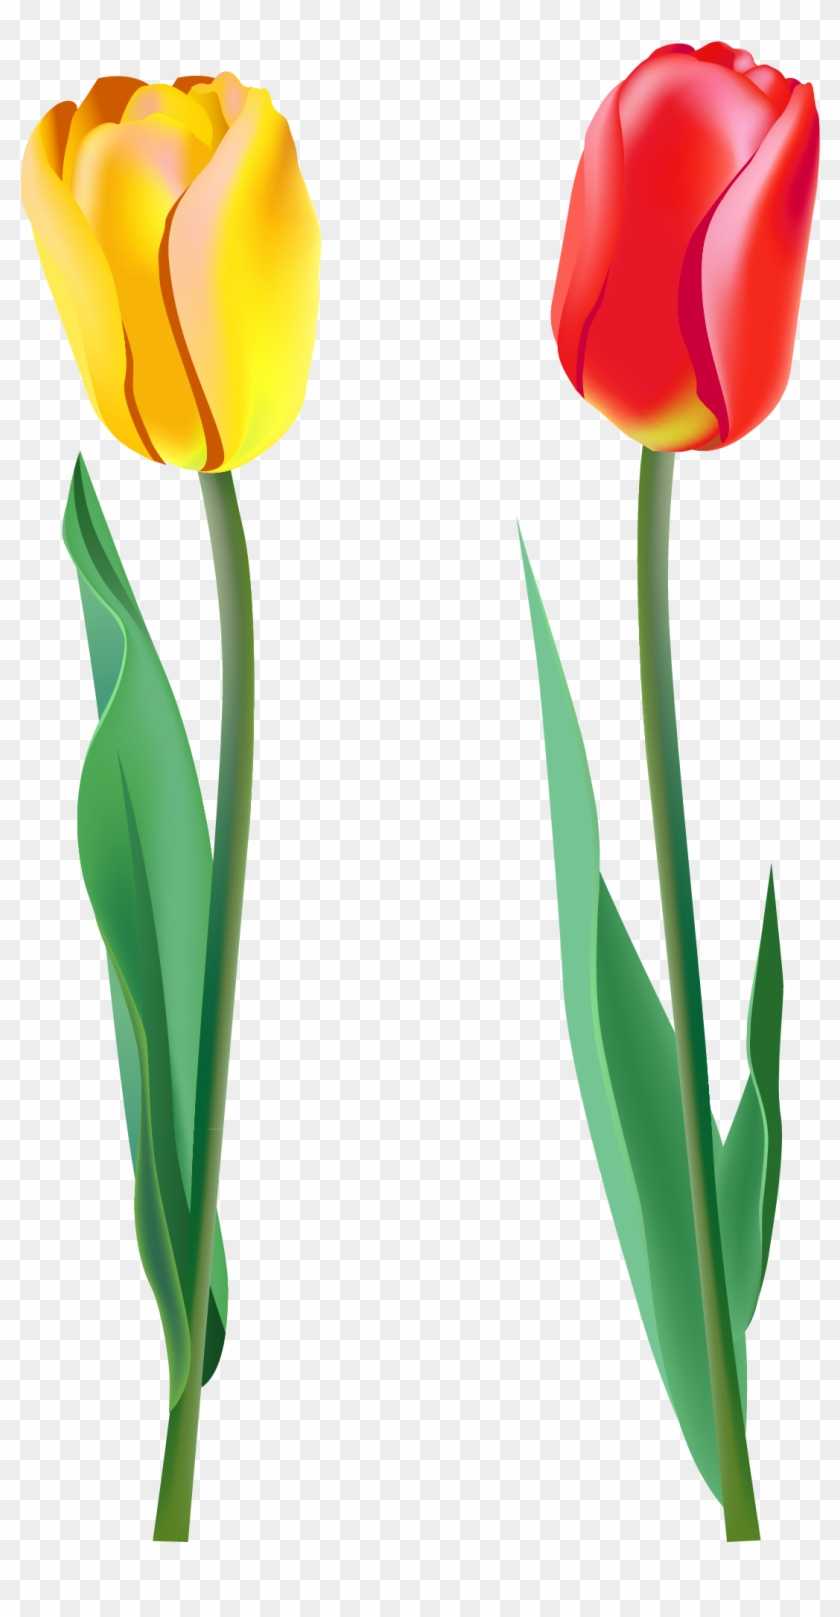 Spring Clipart Pink Tulip Two Flowers Png Free Transparent Png